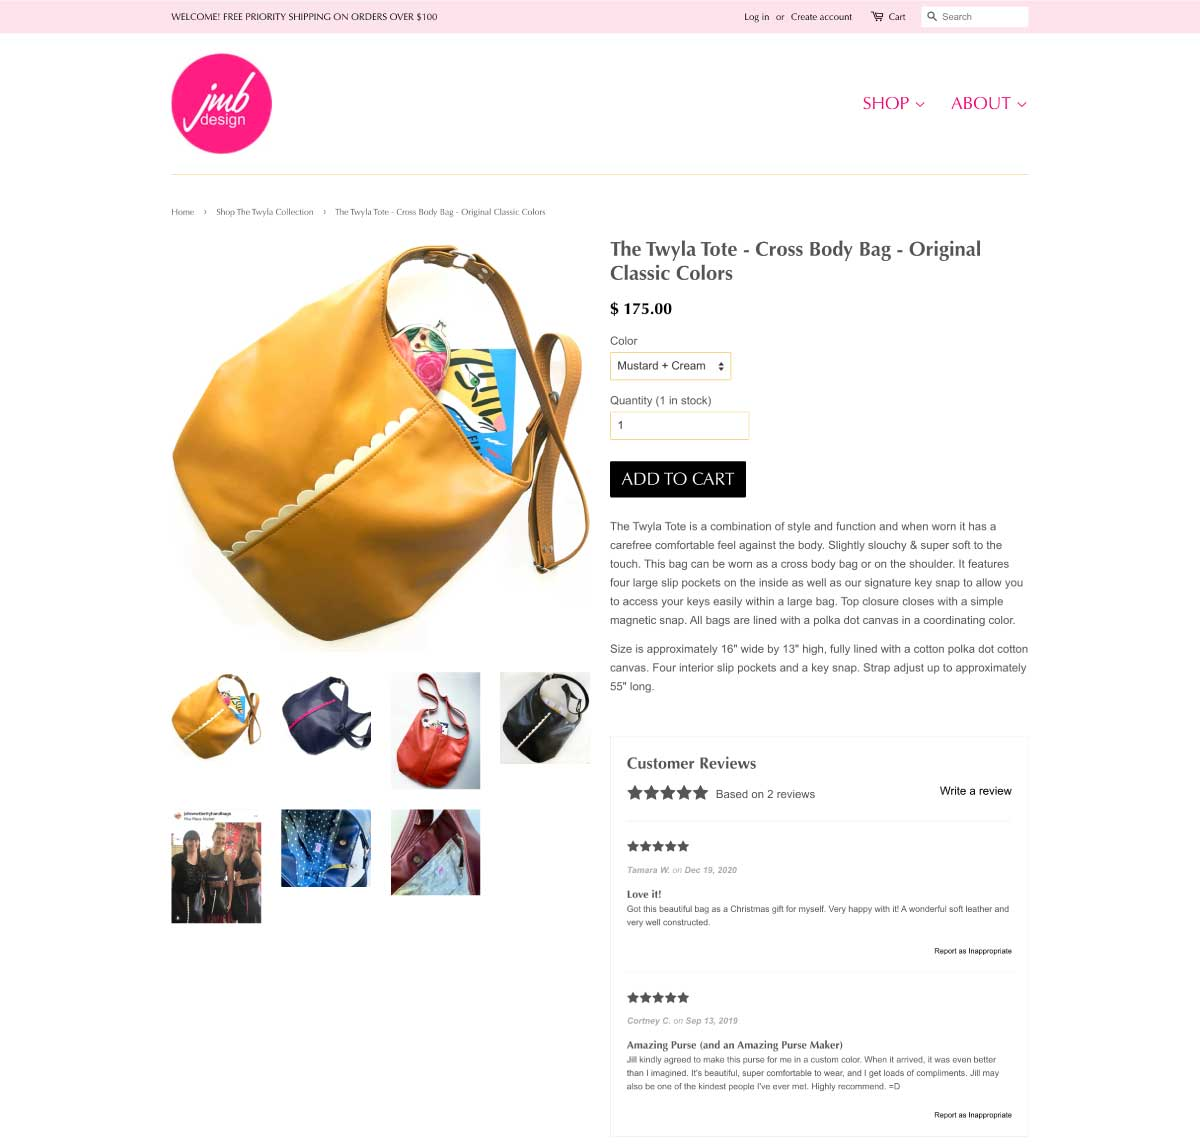 john met betty product page social proof customer reviews